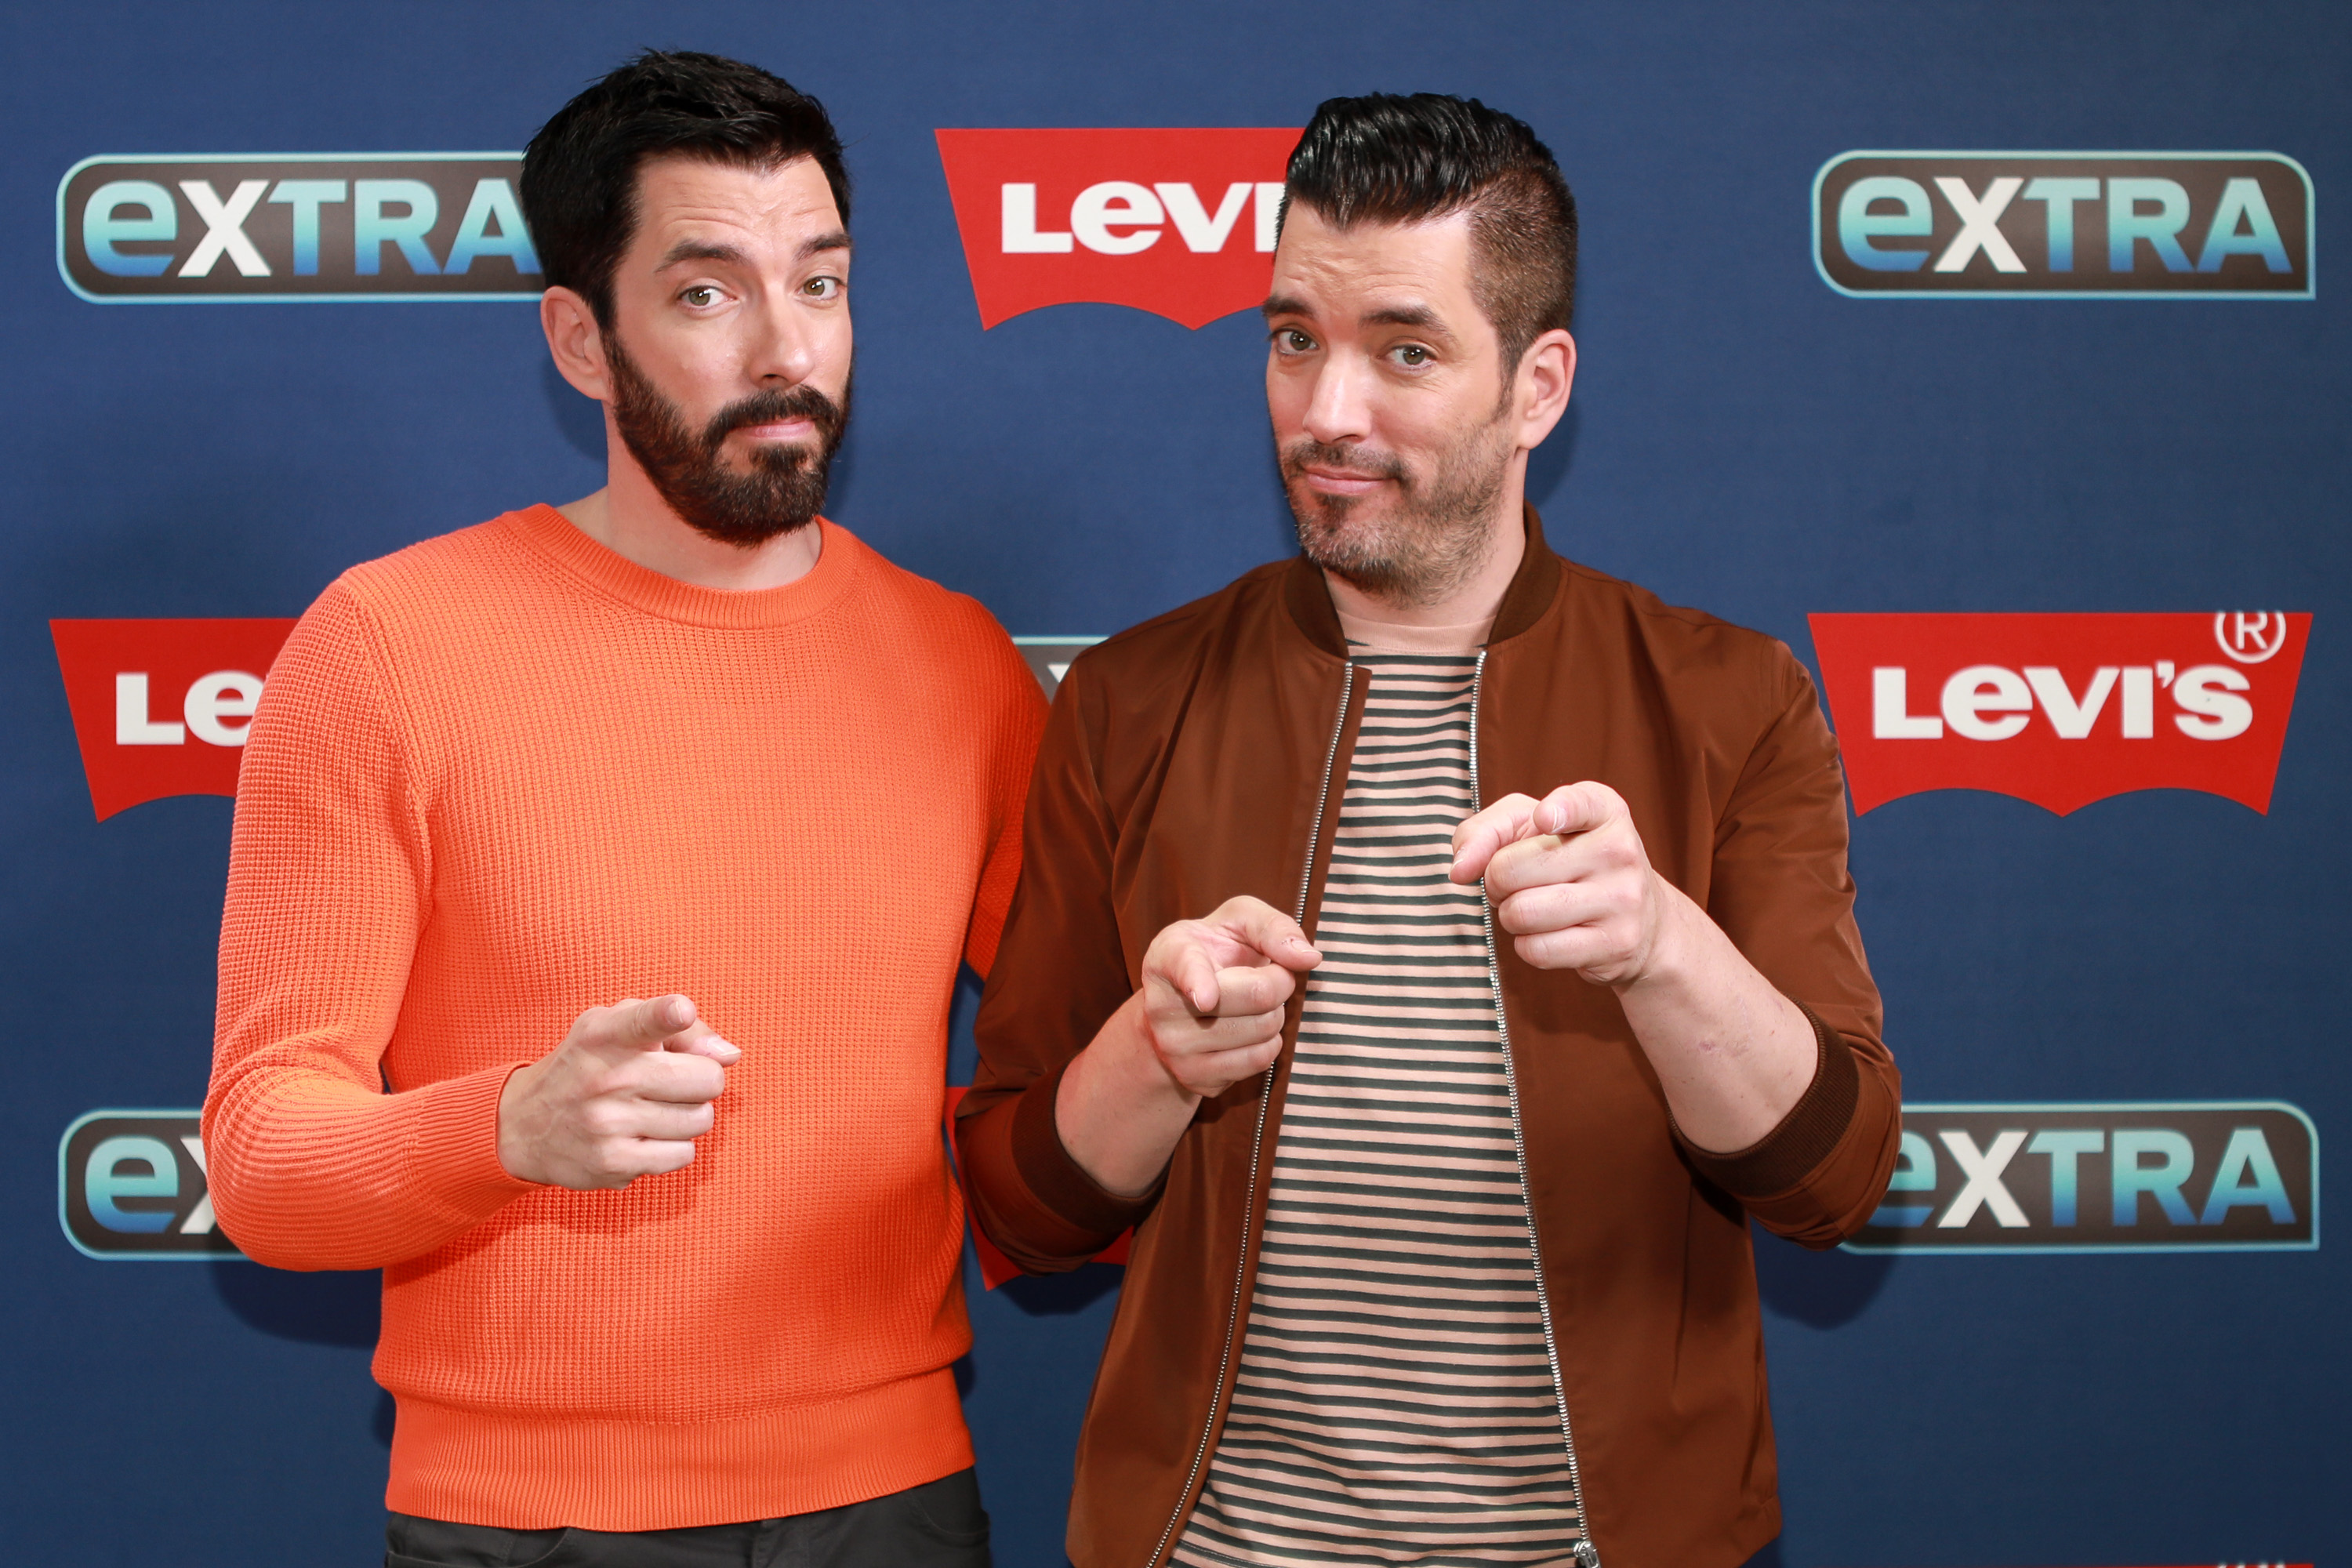 'Property Brothers' Drew And Jonathan Scott Talk Producing The Show Amid The Pandemic